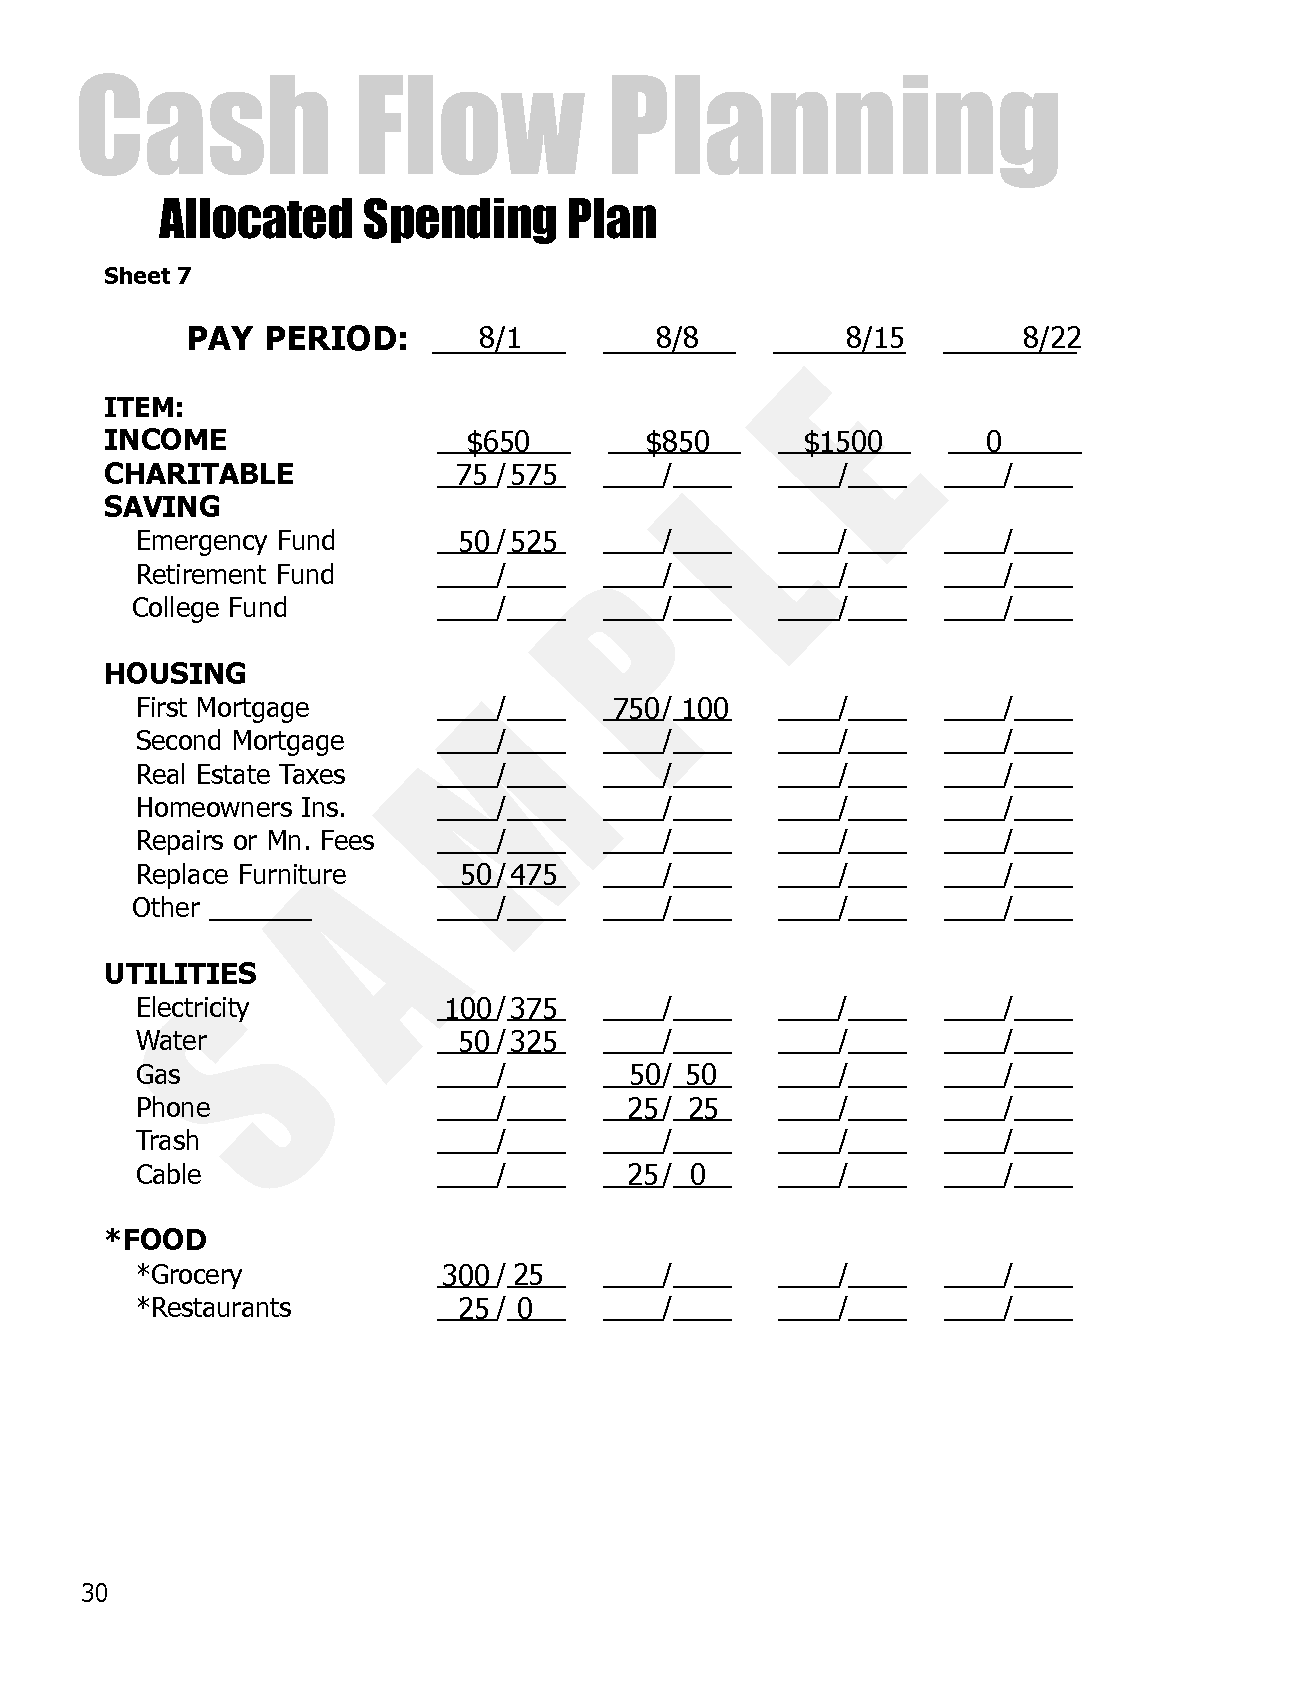 34 Spending Plan Worksheet Answers